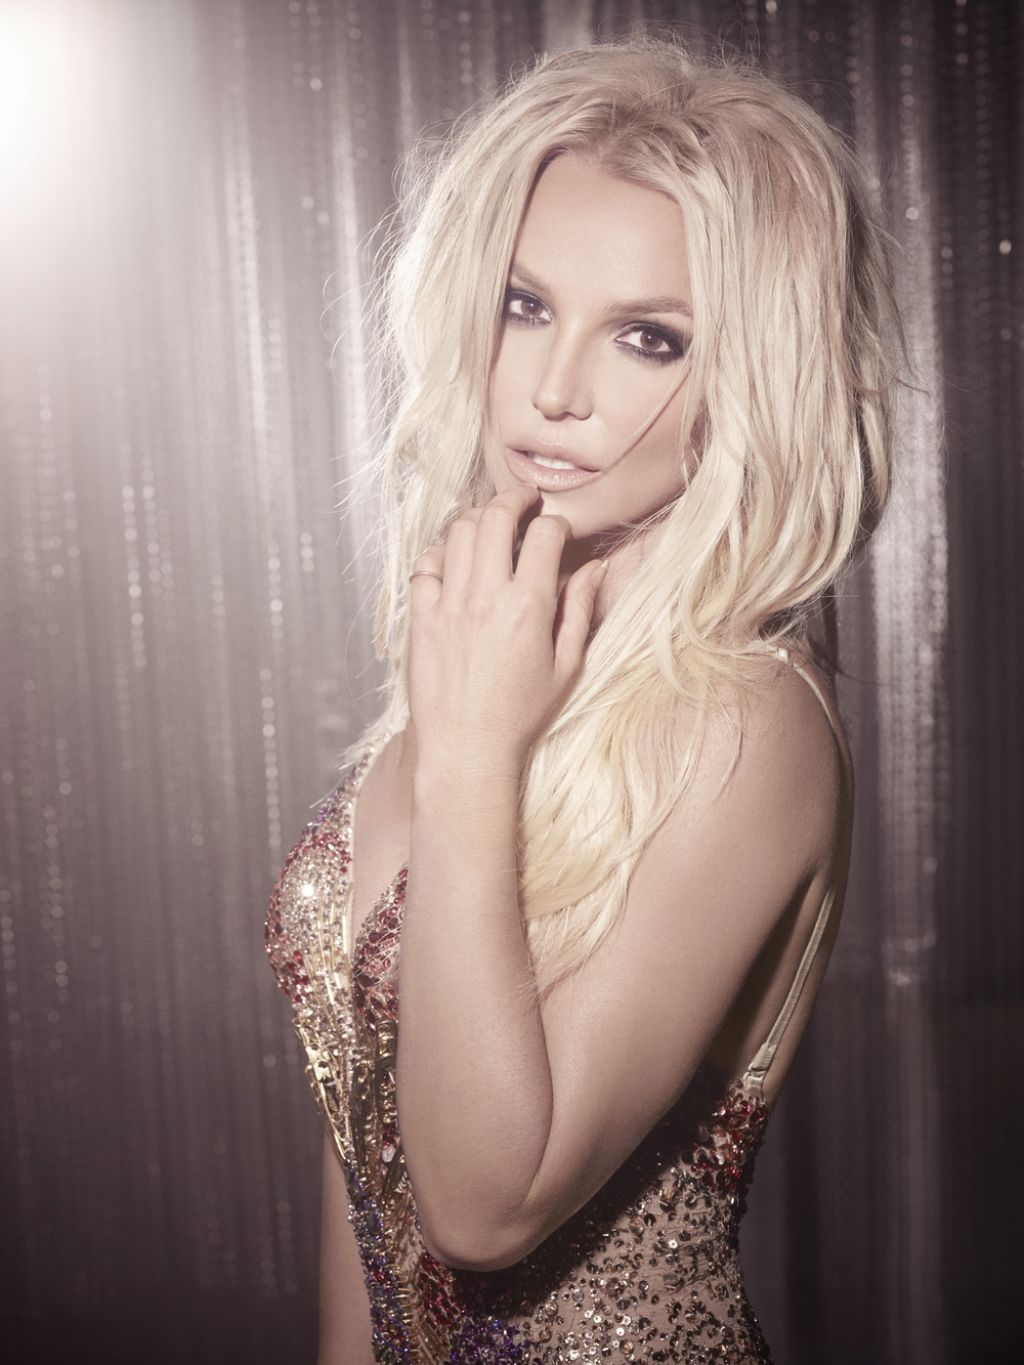 Britney Spears Wallpapers Music Hq Britney Spears Pictures 4k Wallpapers 2019